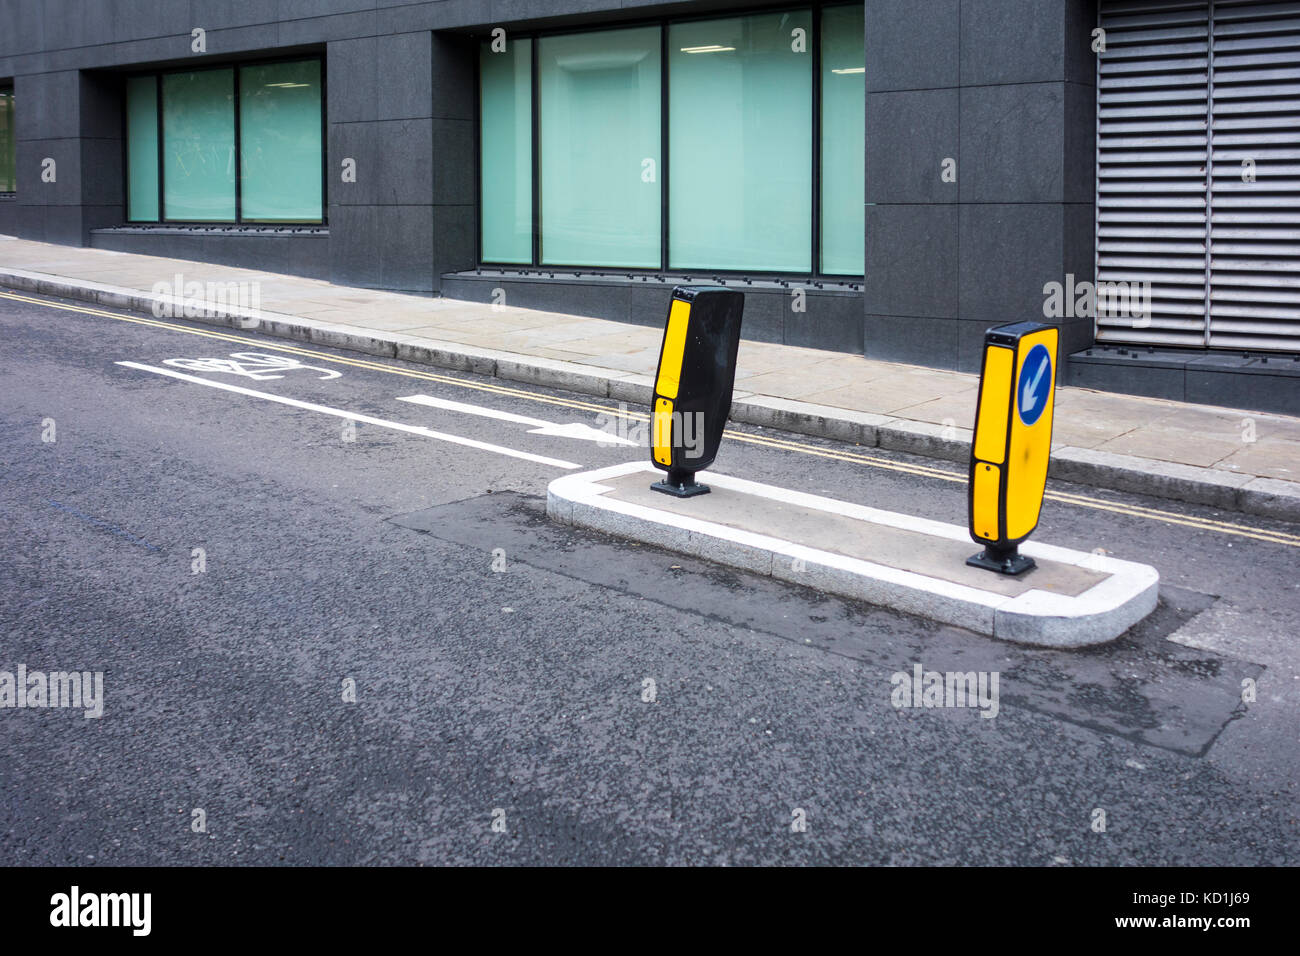 Central road bollard next to separated dedicated cycle lane. Lambeth Hill, London, UK - Stock Image